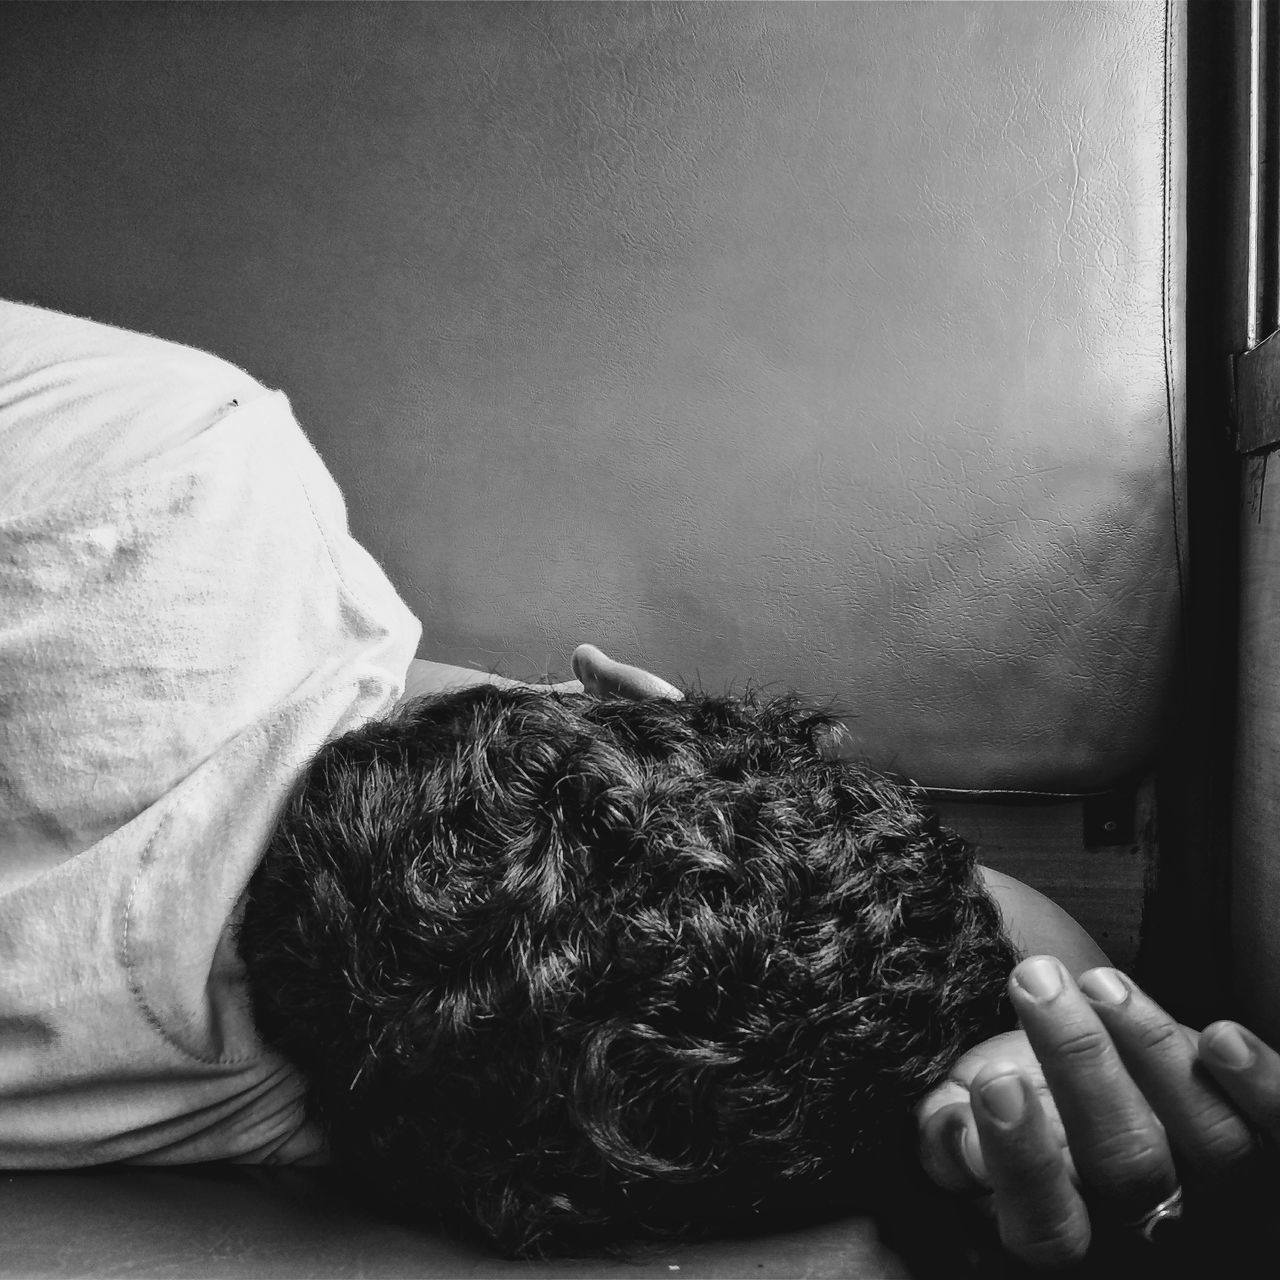 Indoors  Human Body Part Human Hand One Person People Real People Adults Only Domestic Room Adult Close-up Only Women Day India Blackandwhite Bnw Monochrome One Man Only Sleeping Human Back Headshot Travel TheWeek On EyEem Adult